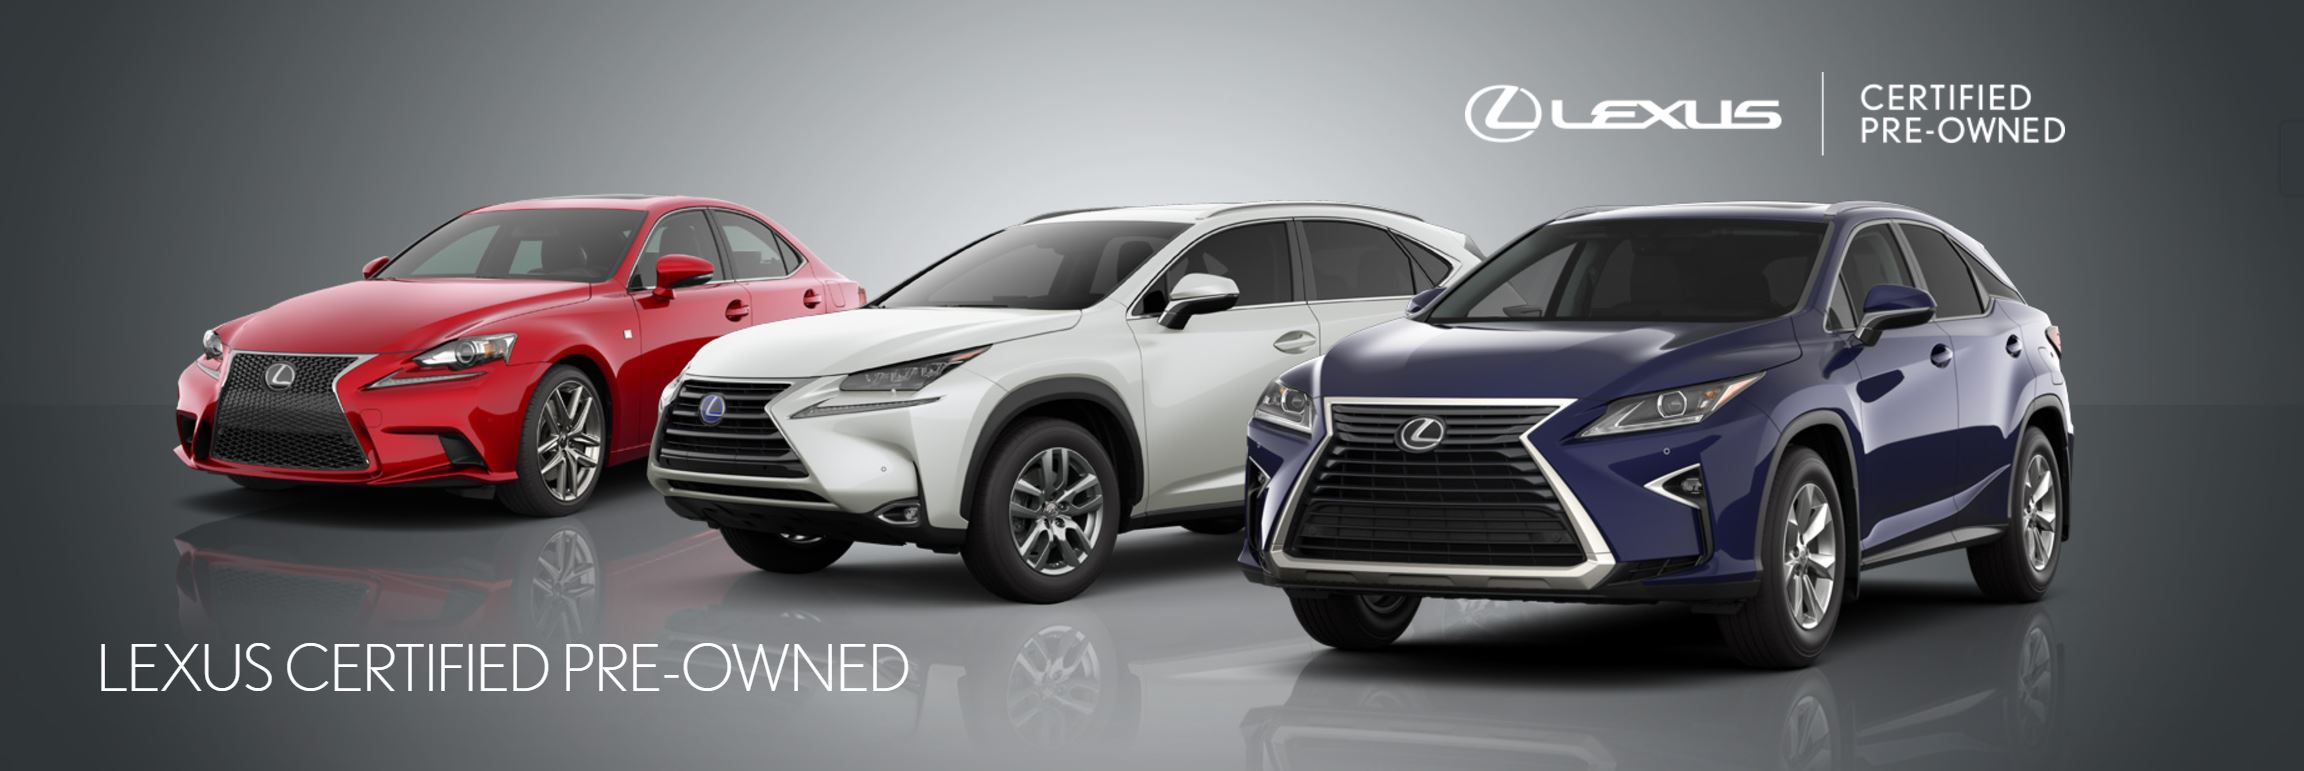 Benefits of a Certified Pre-Owned Vehicles at Ken Shaw Lexus in Toronto, Ontario